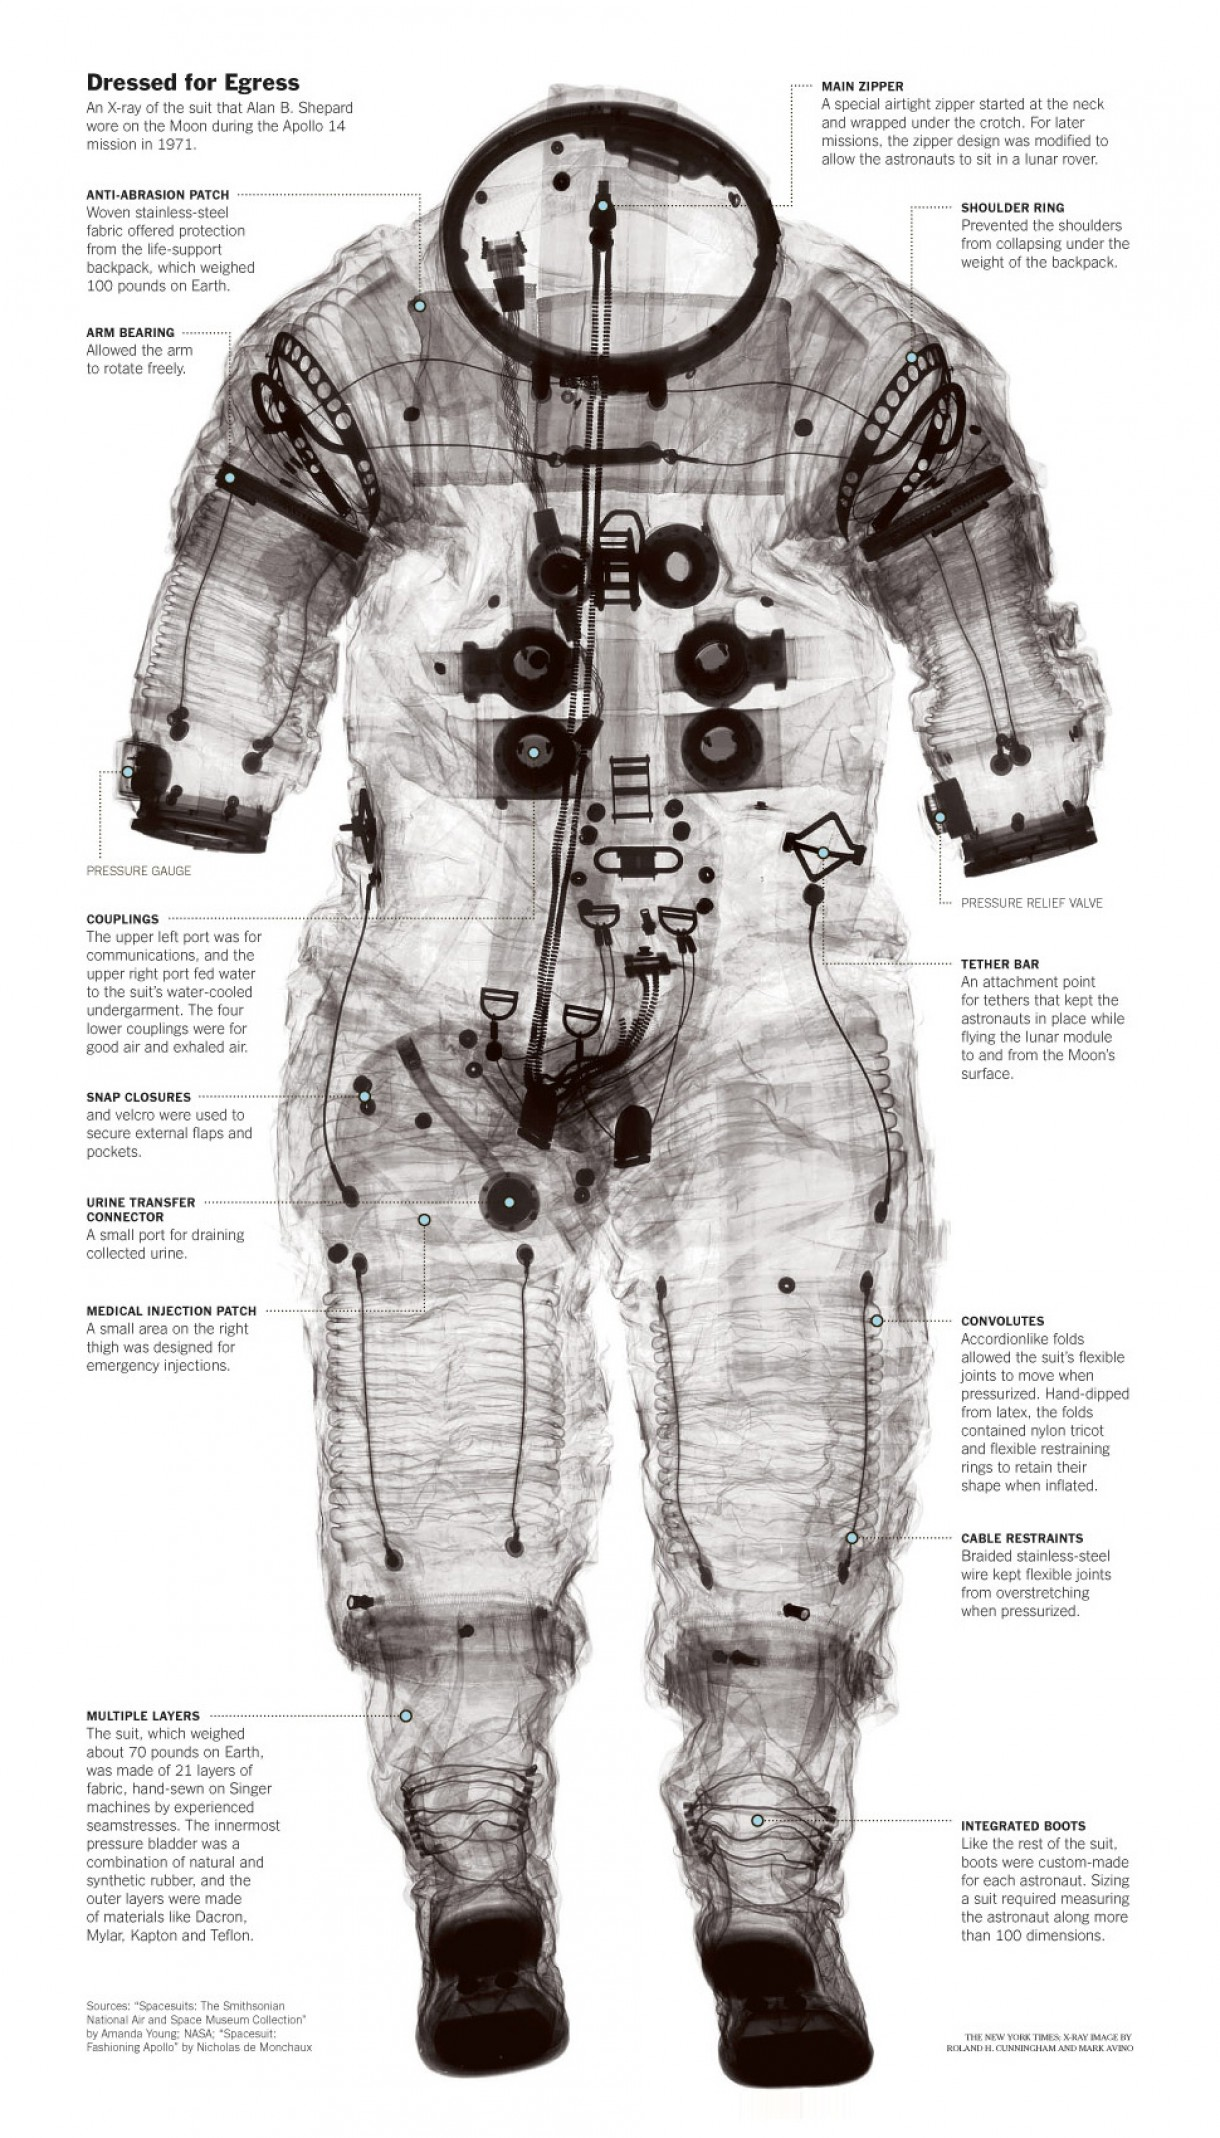 X-Ray Of Space Suit Worn By Alan Shepherd As Worn On The Moon